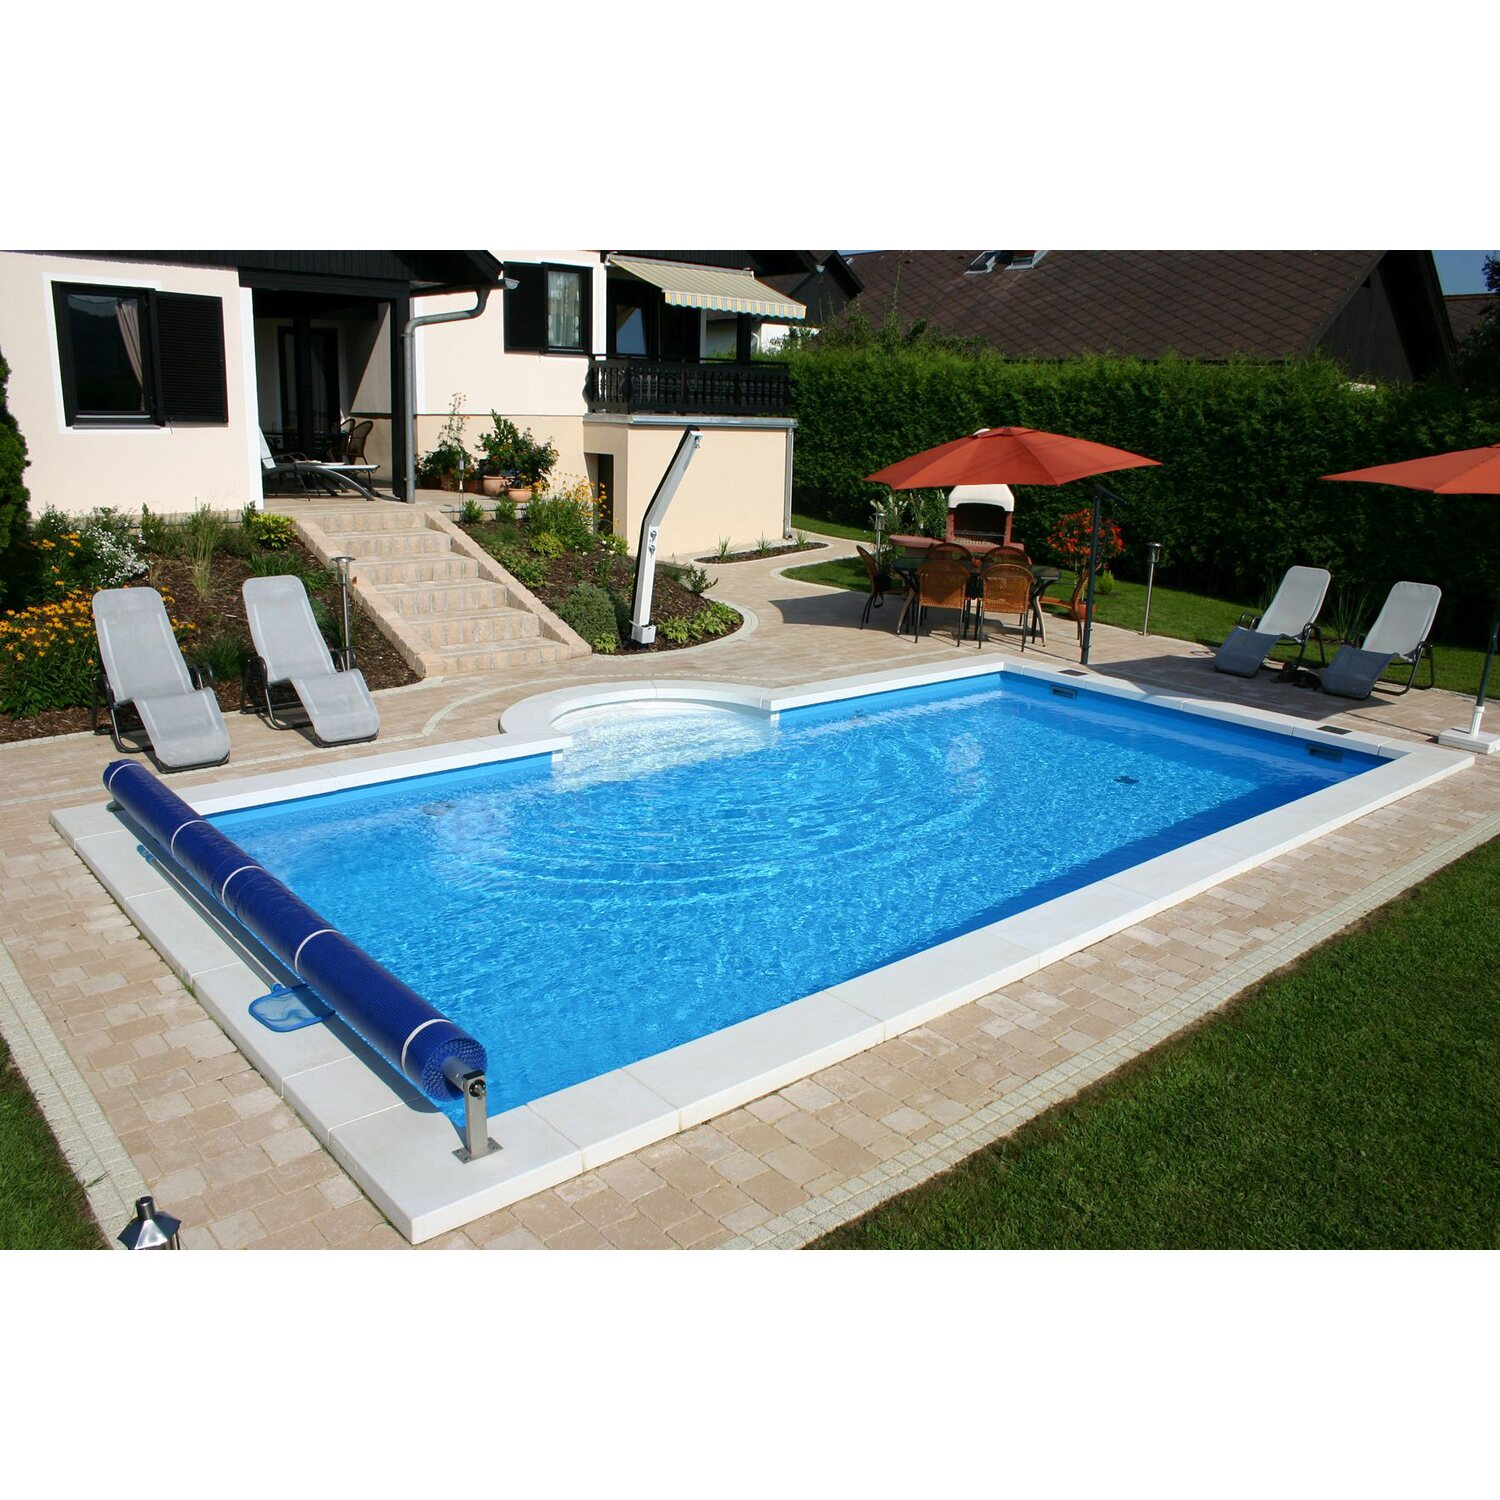 Summer fun styropor pool set london 800 cm x 400 cm x 150 for Hornbach pool set